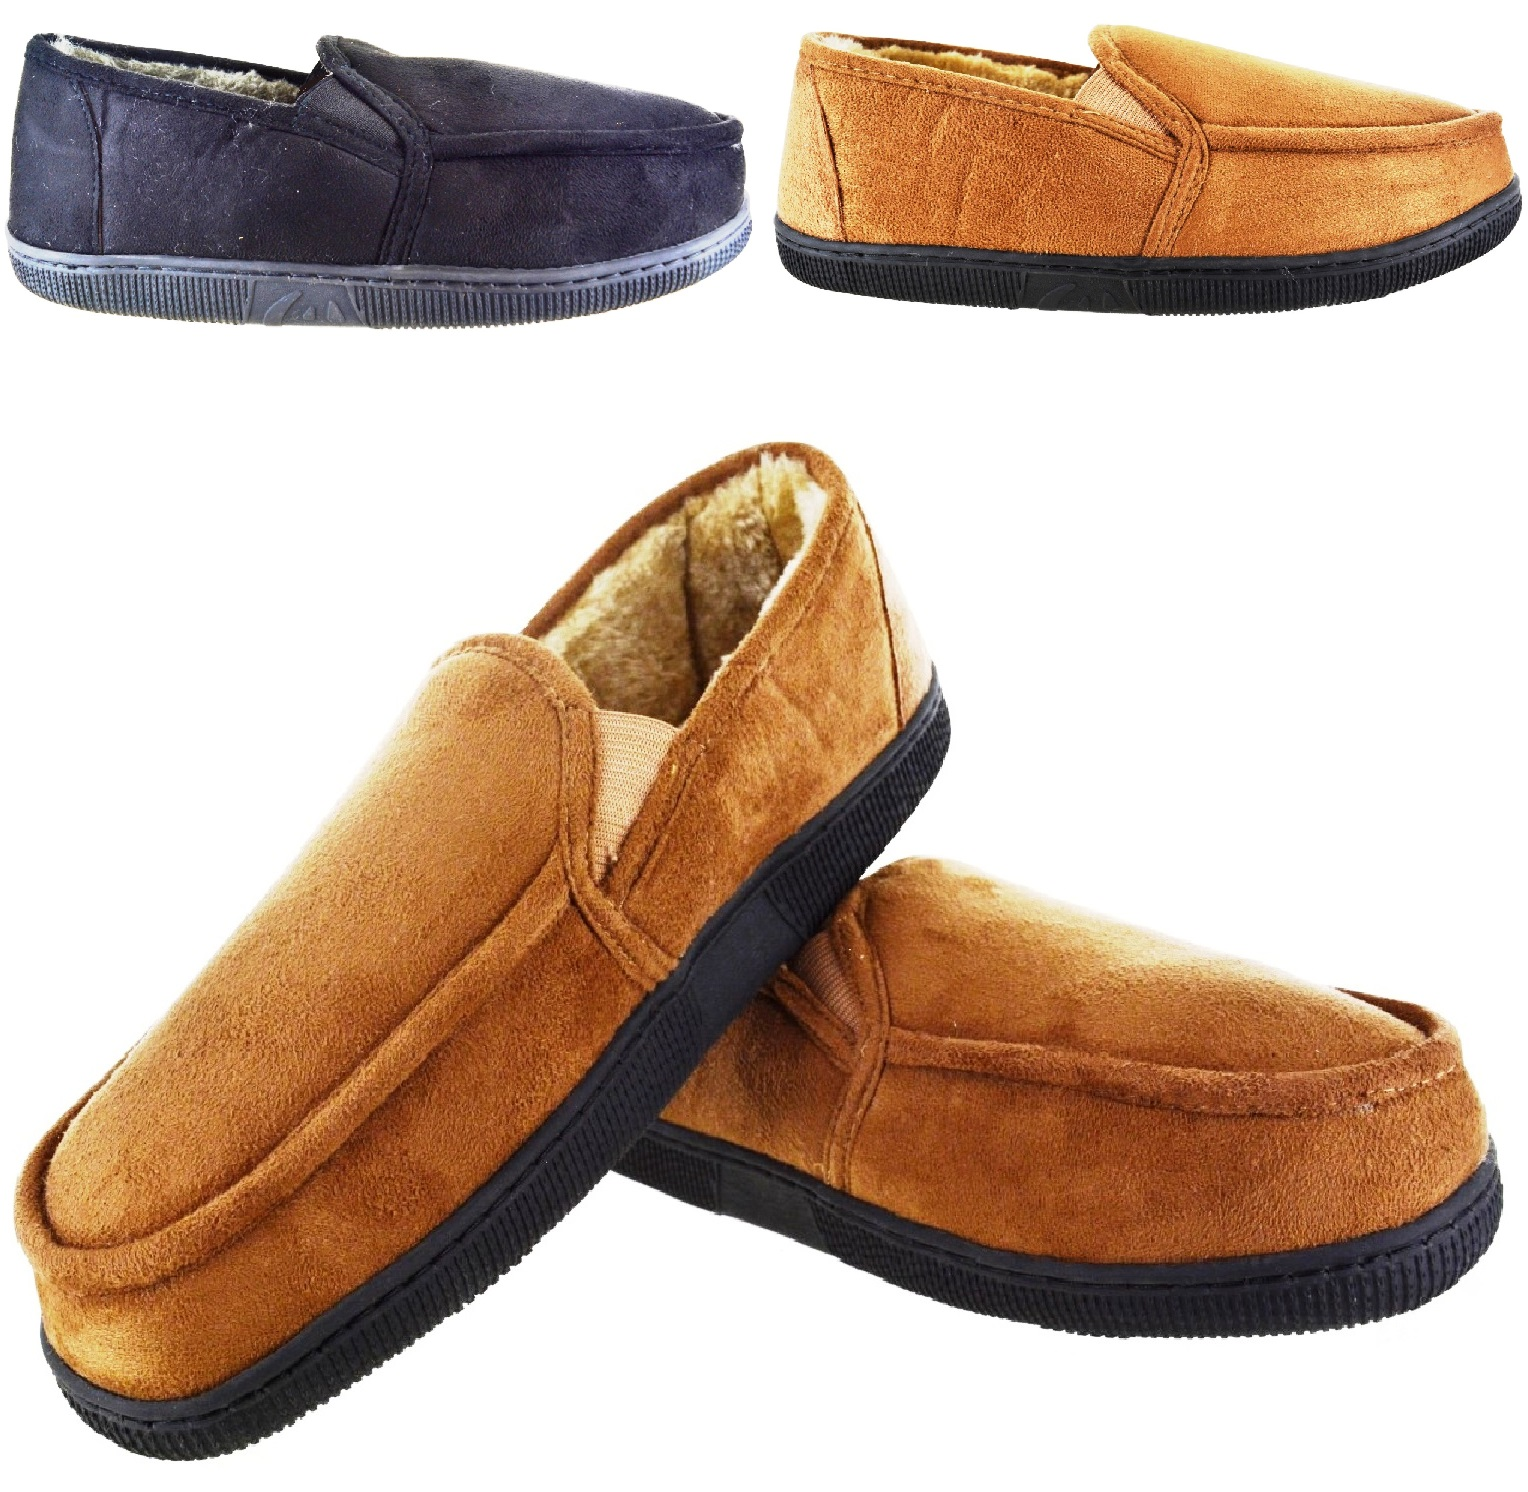 4fd62d3c6 Sentinel MENS GENT WARM FLEECE LINED MOCCASIN WINTER FLAT SLIPPERS SHOES UK  SIZE 7-11 NEW